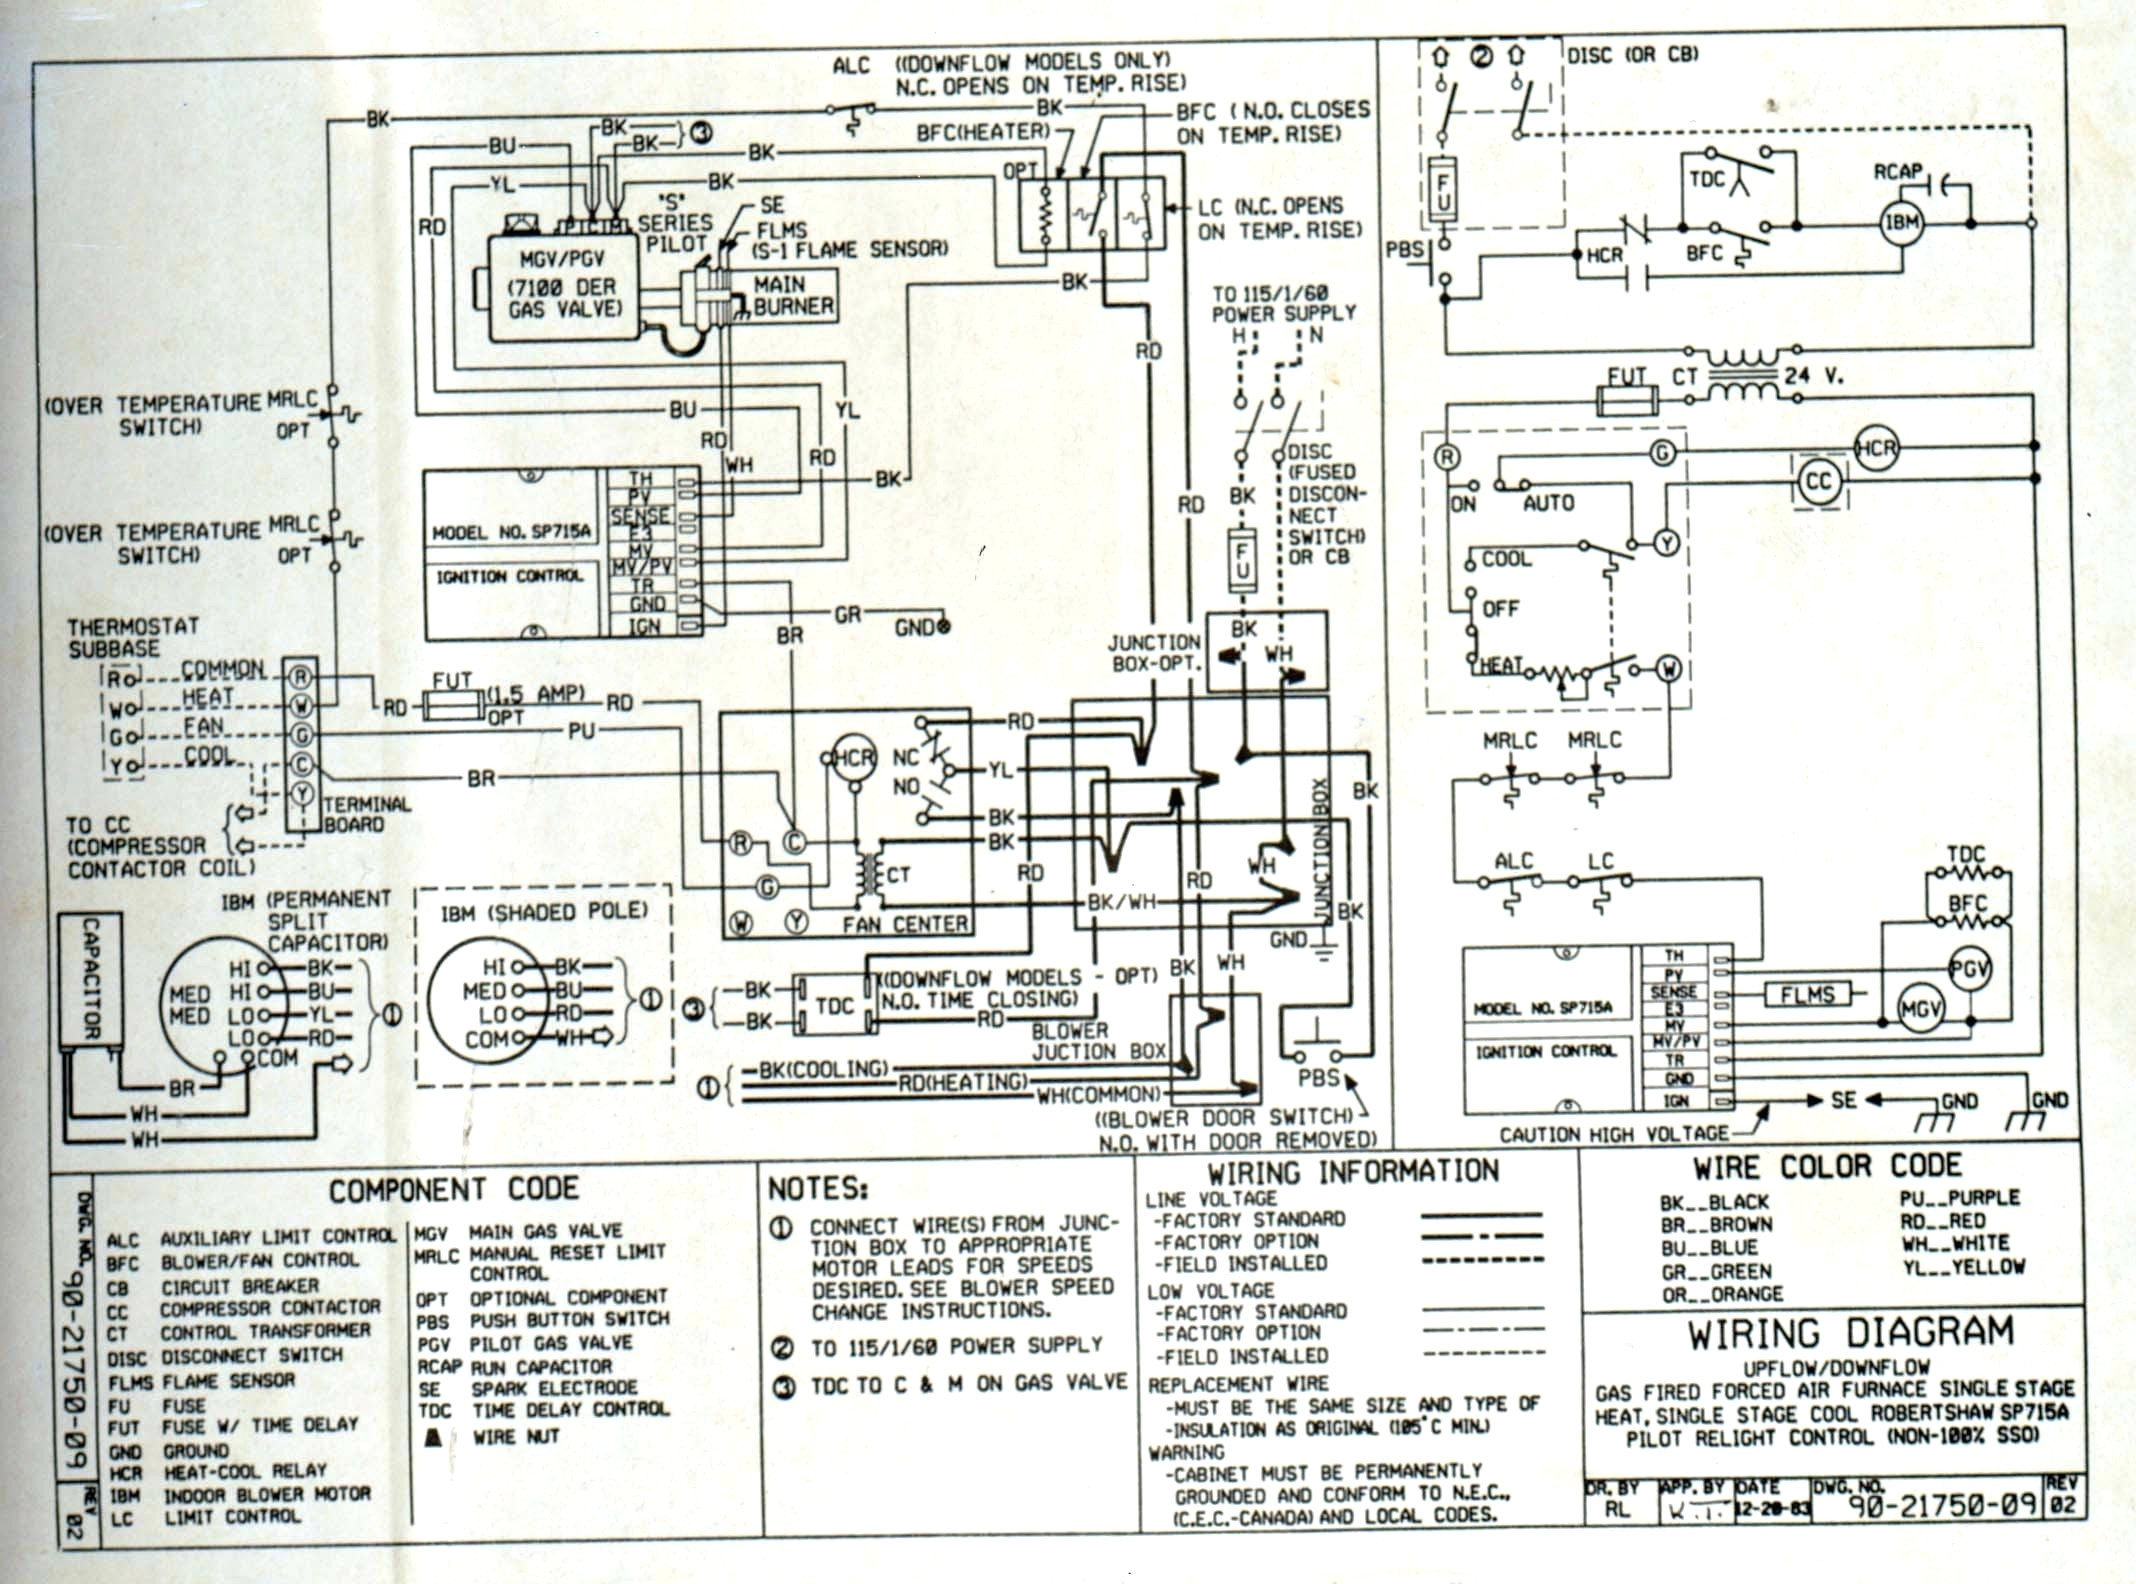 york wiring schematics york rooftop unit wiring diagram | free wiring diagram york wiring diagrams h4db036s25a